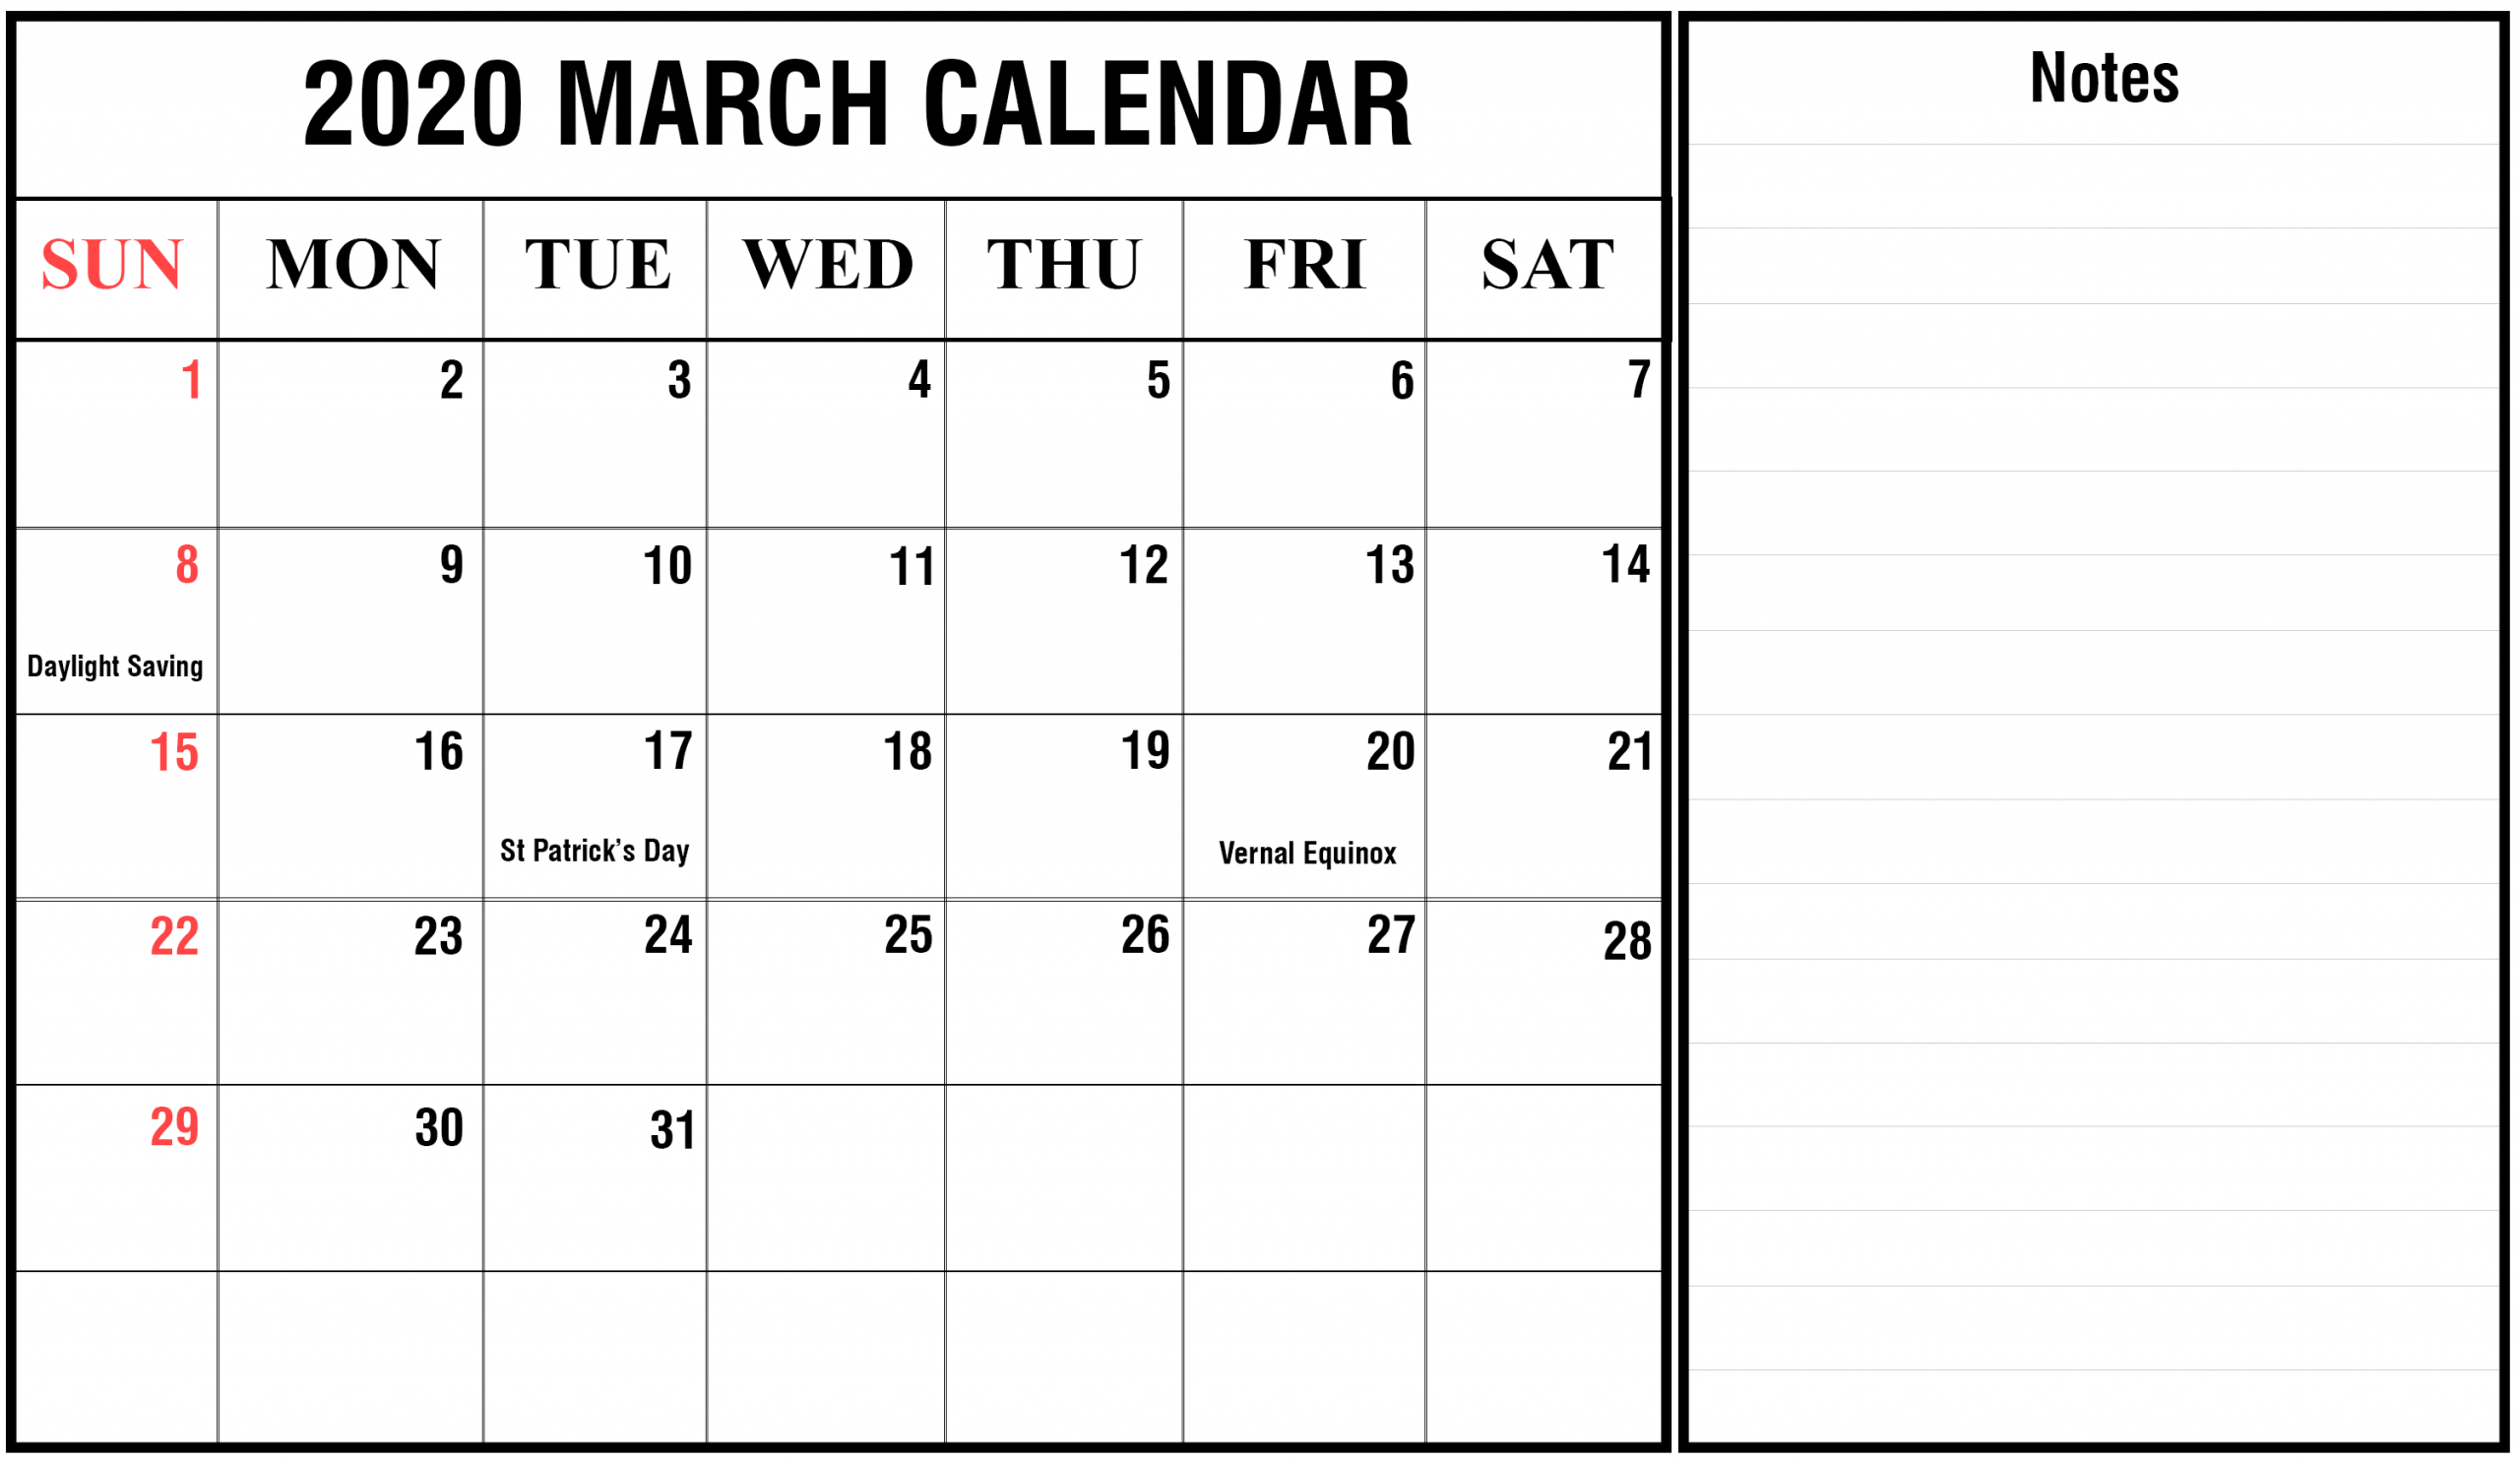 March 2020 Calendar With Holidays - Us, Uk, Canada